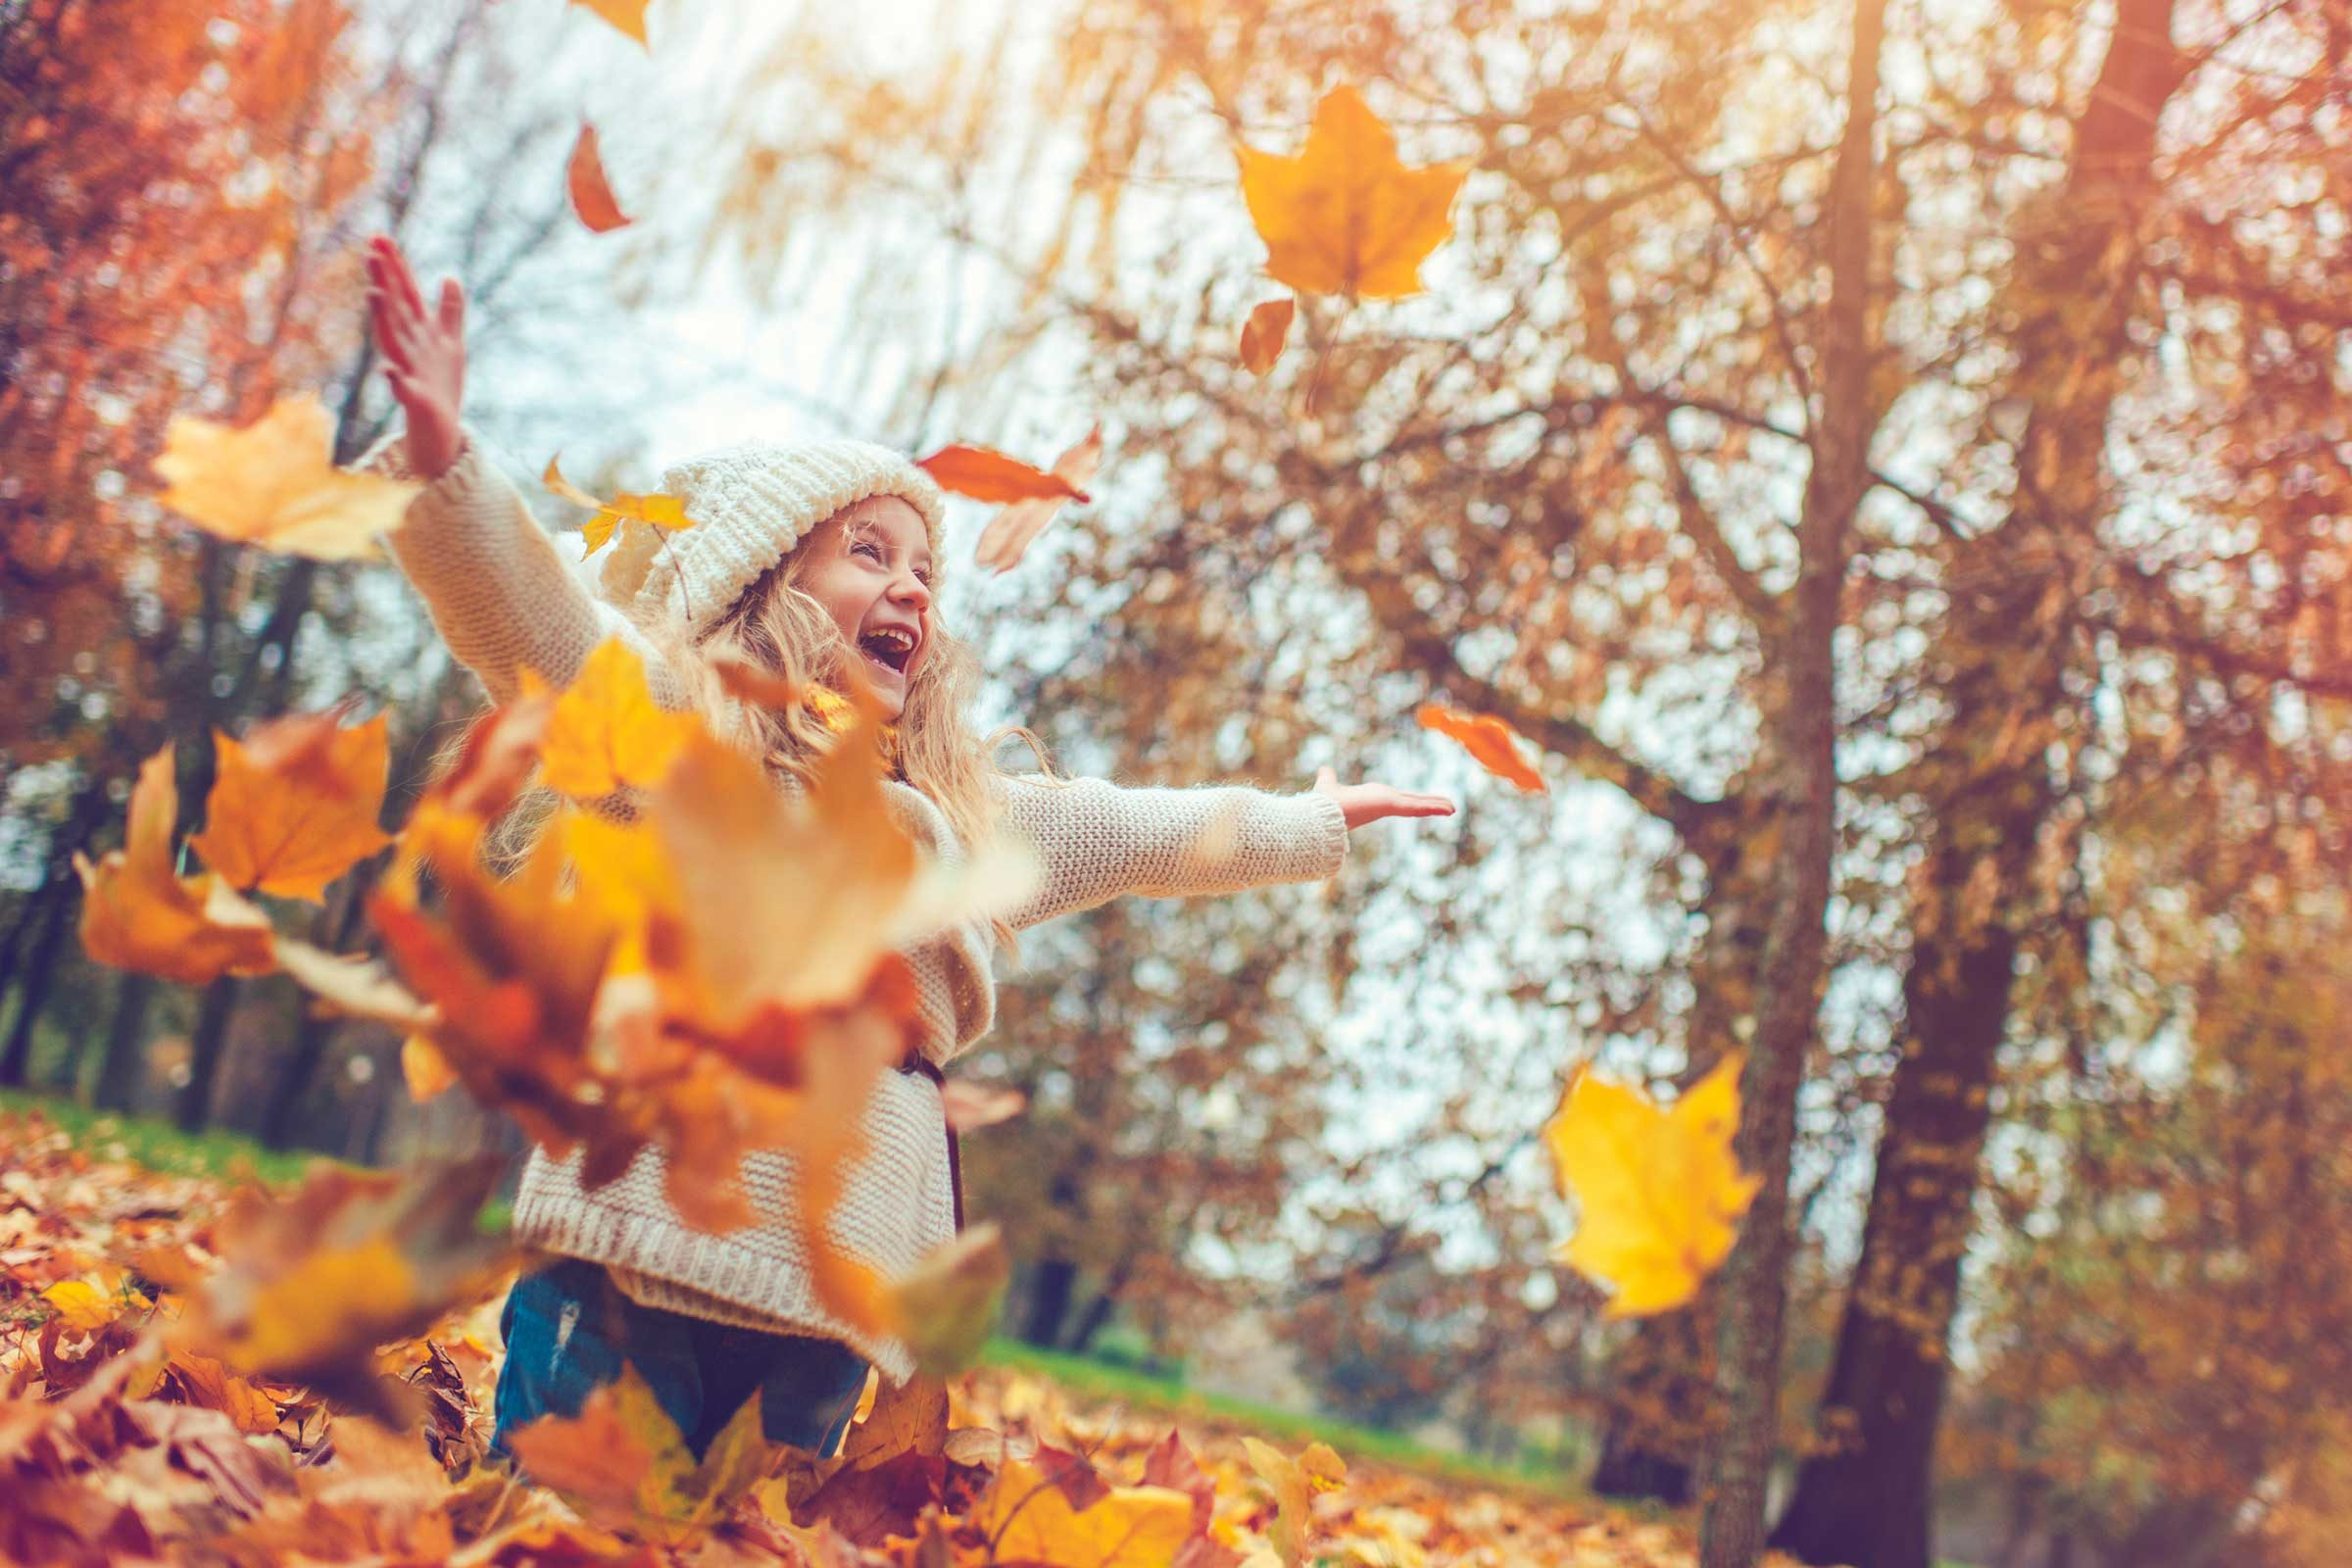 01-catching-youre-going-want-steal-thanksgiving-traditions